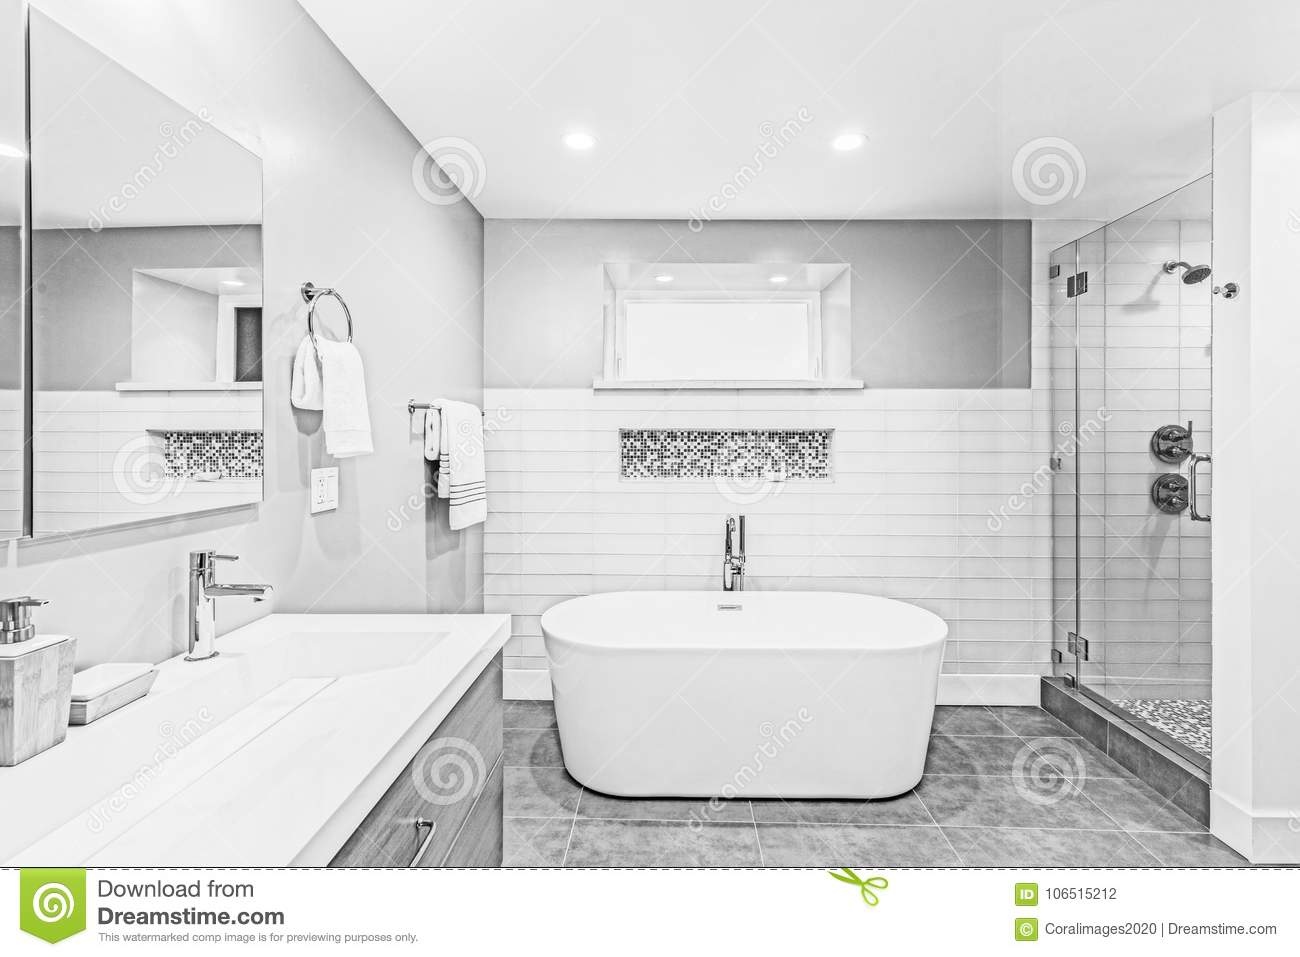 Architectural Drawing Of Bathroom Illustration. Stock ...